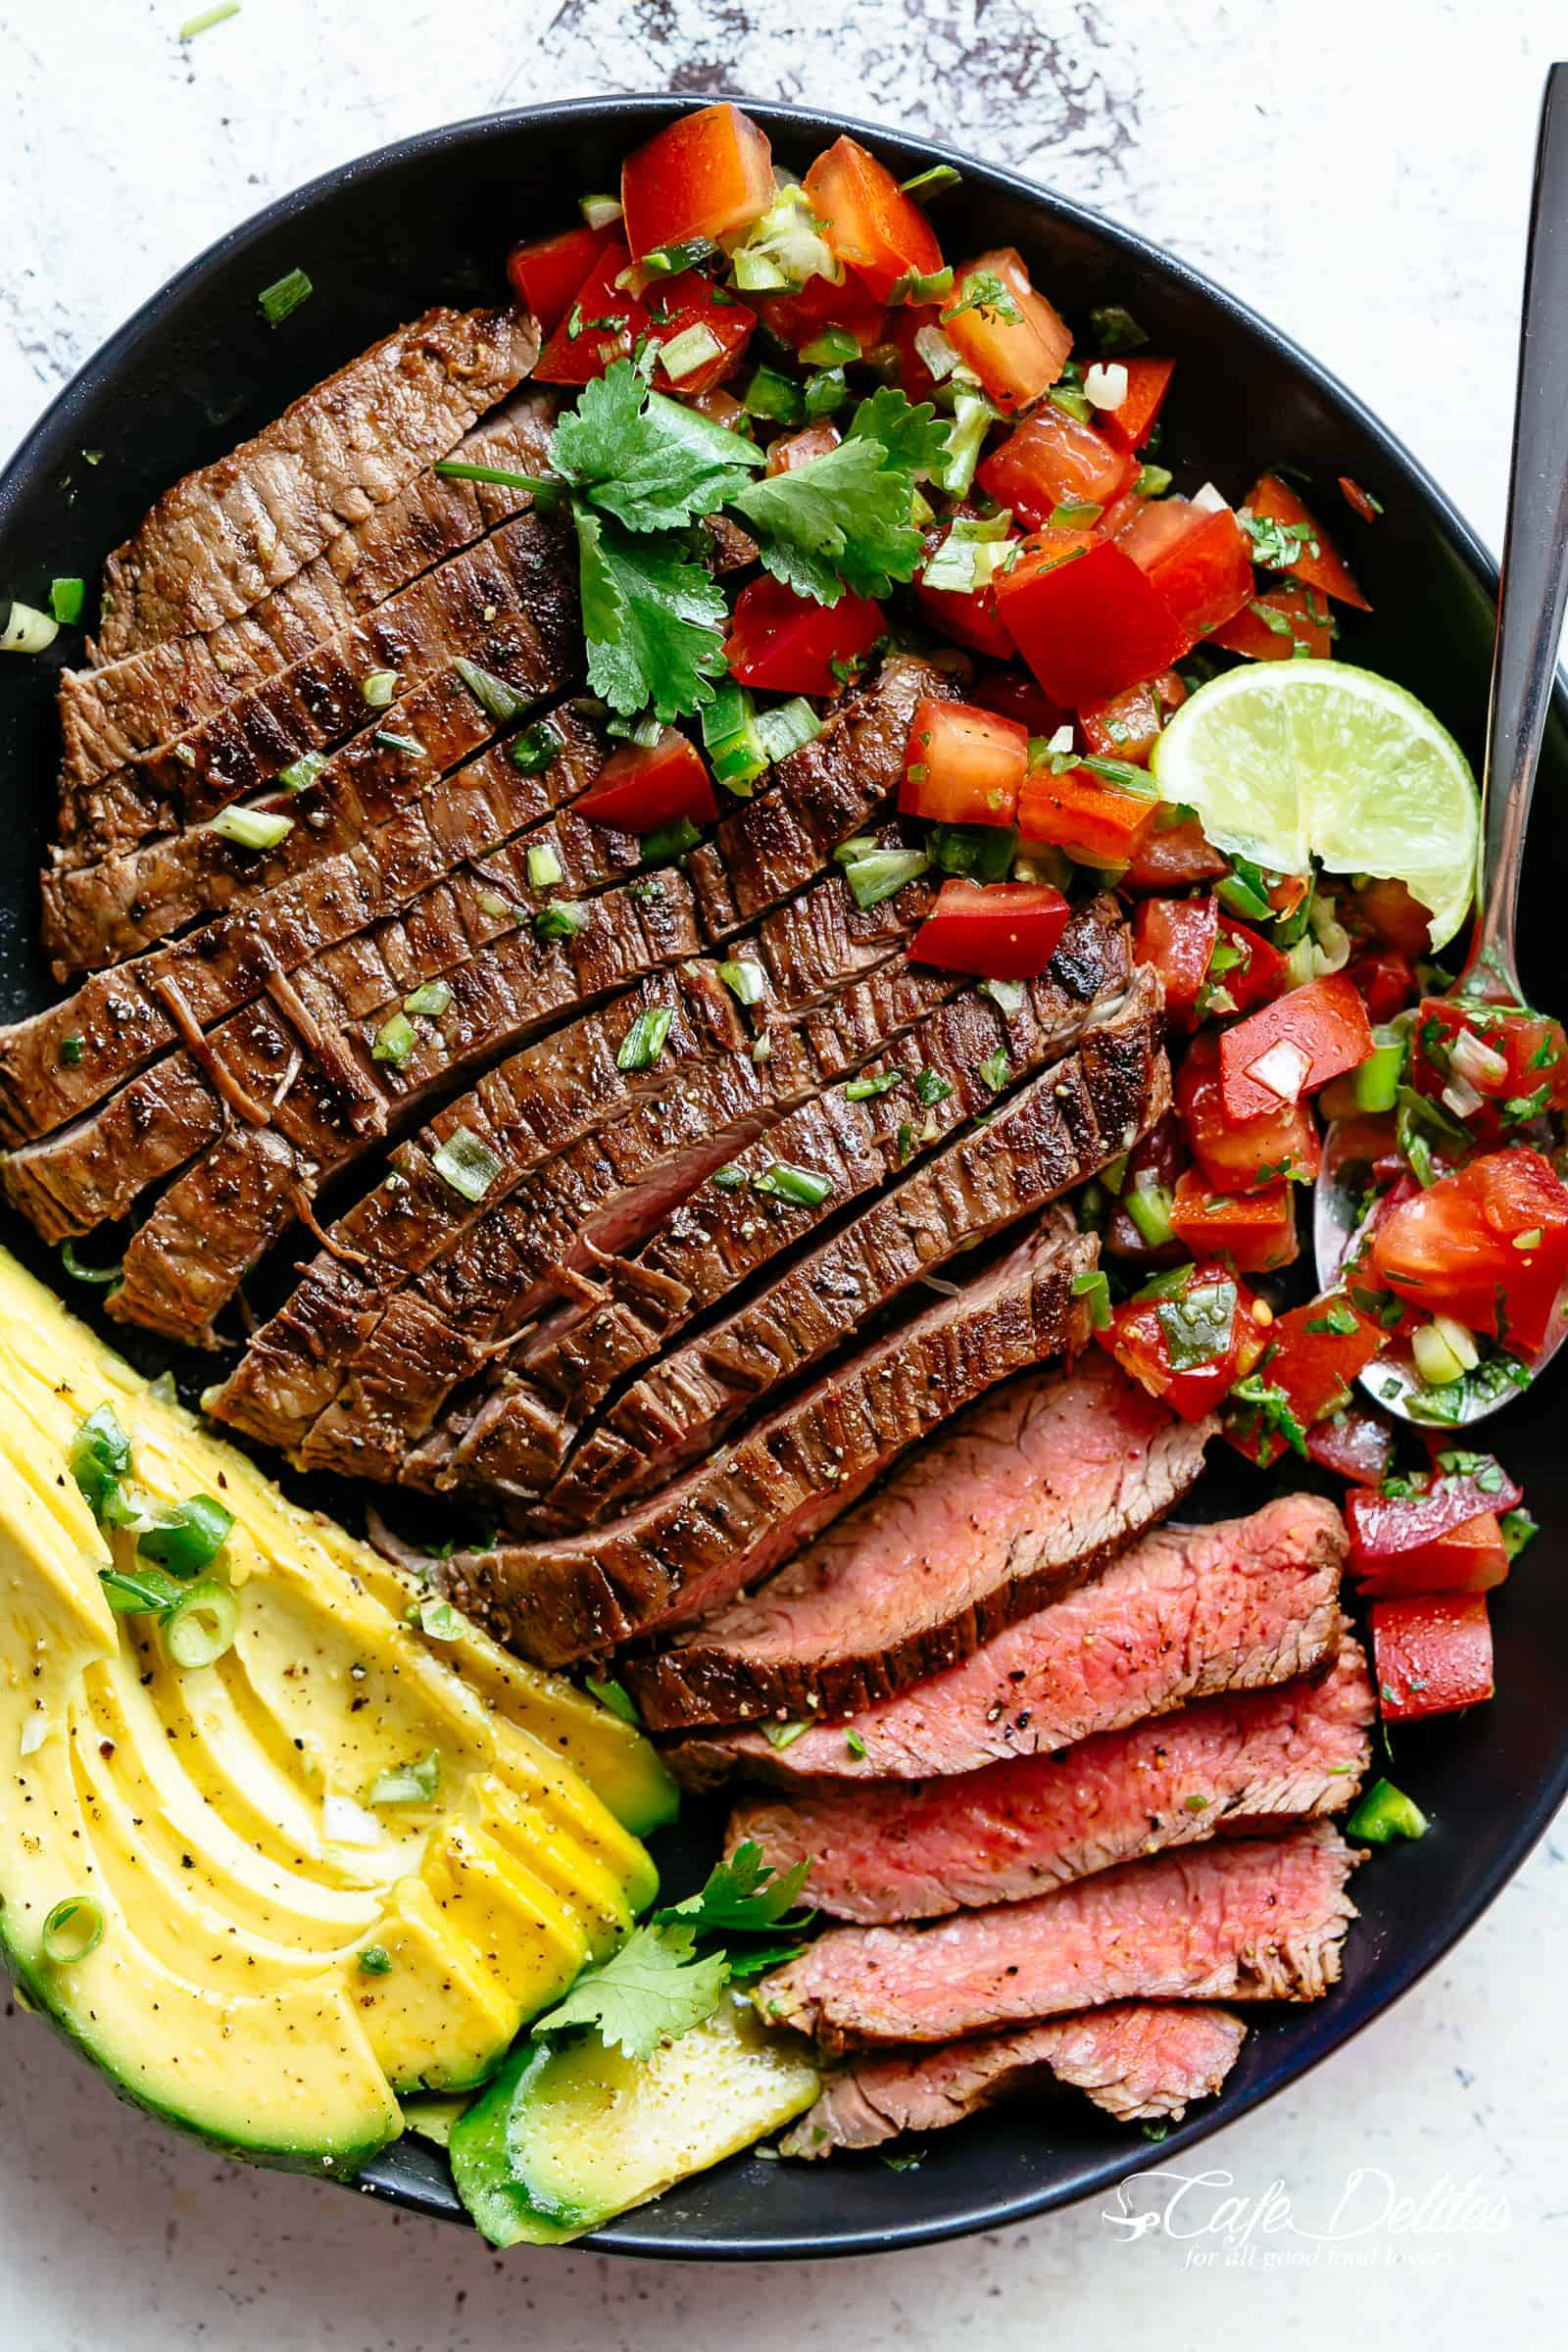 Carne Asada prepared with a deliciously easy and authentic marinade just in time for your Cinco De Mayo menu planning! Juicy and tender grilled flank or skirt steak full of incredible Mexican flavours makes this homemade Carne Asada recipe better than any restaurant! | cafedelites.com